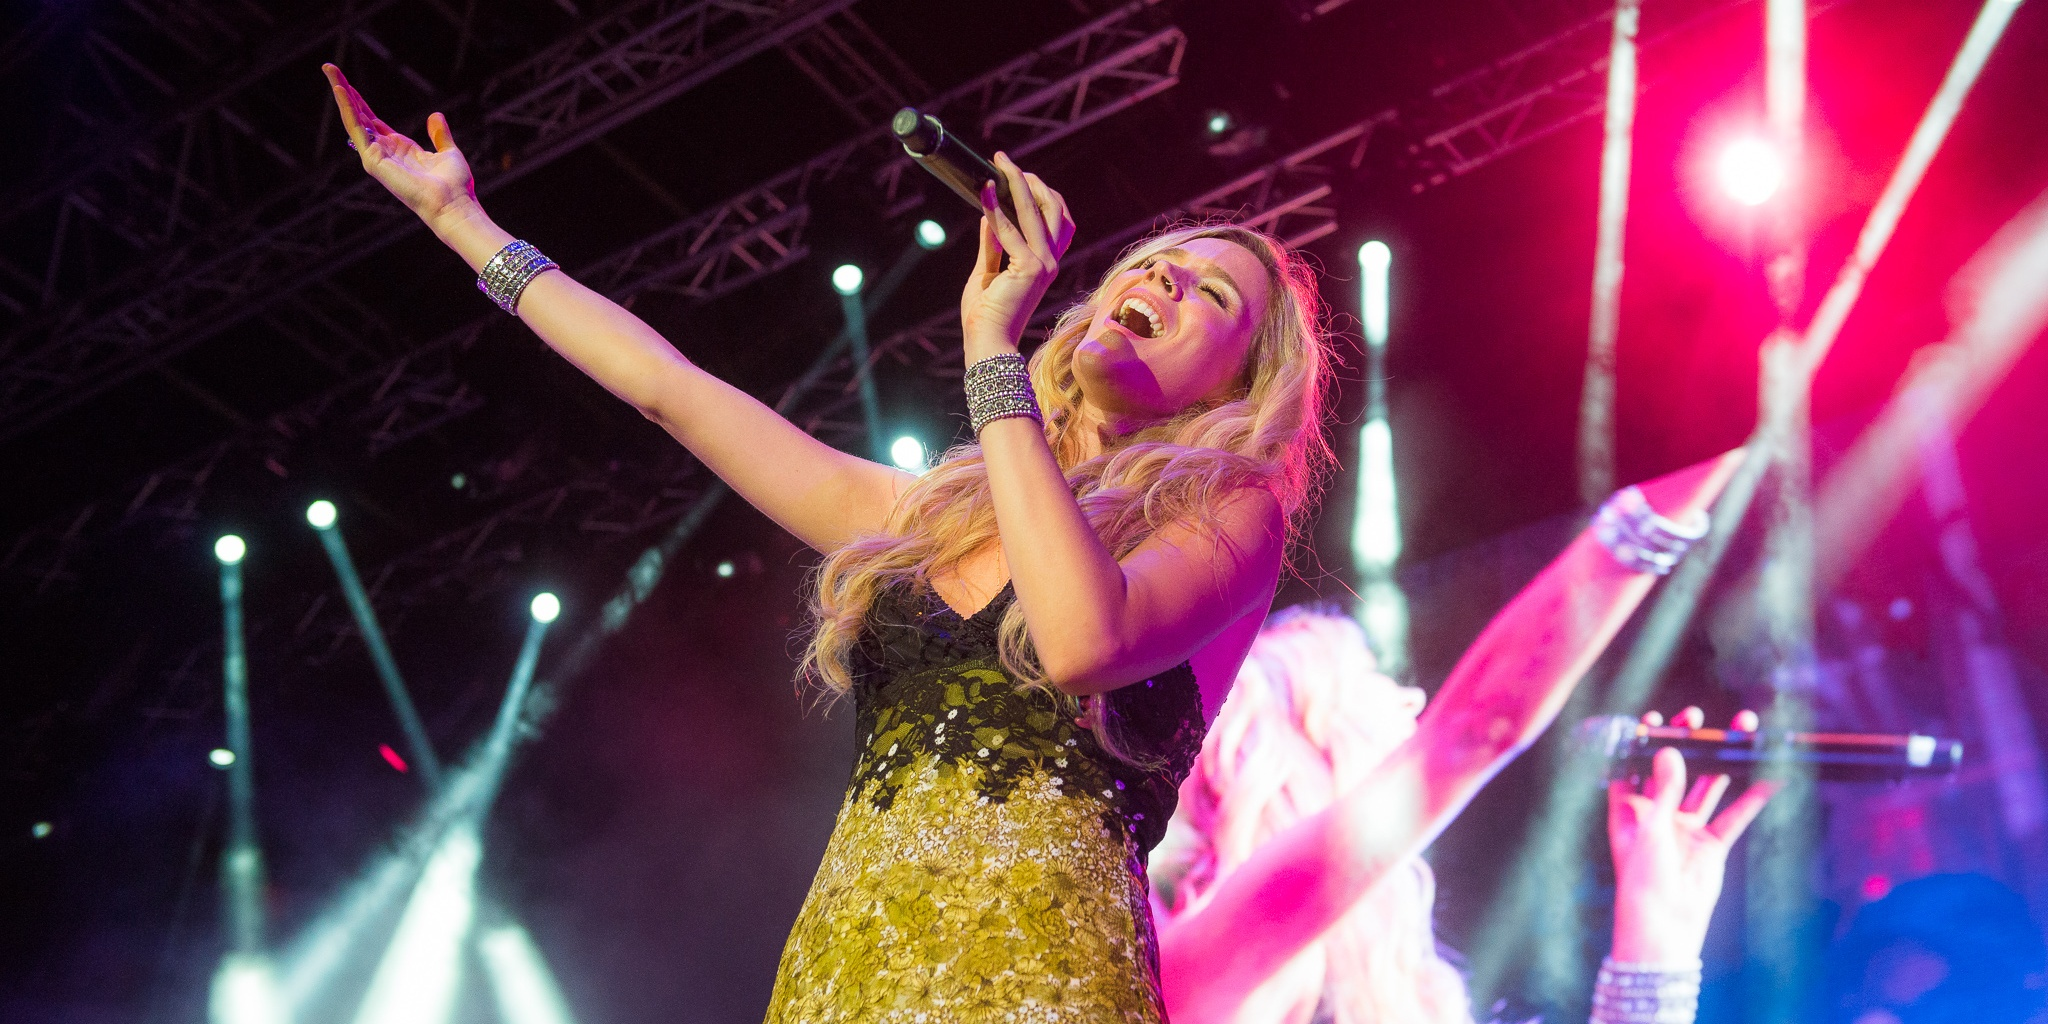 PHOTO GALLERY: Sing Jazz 2016 Day 2 — Joss Stone, Incognito, Candy Dulfer, The Good Life Project & more